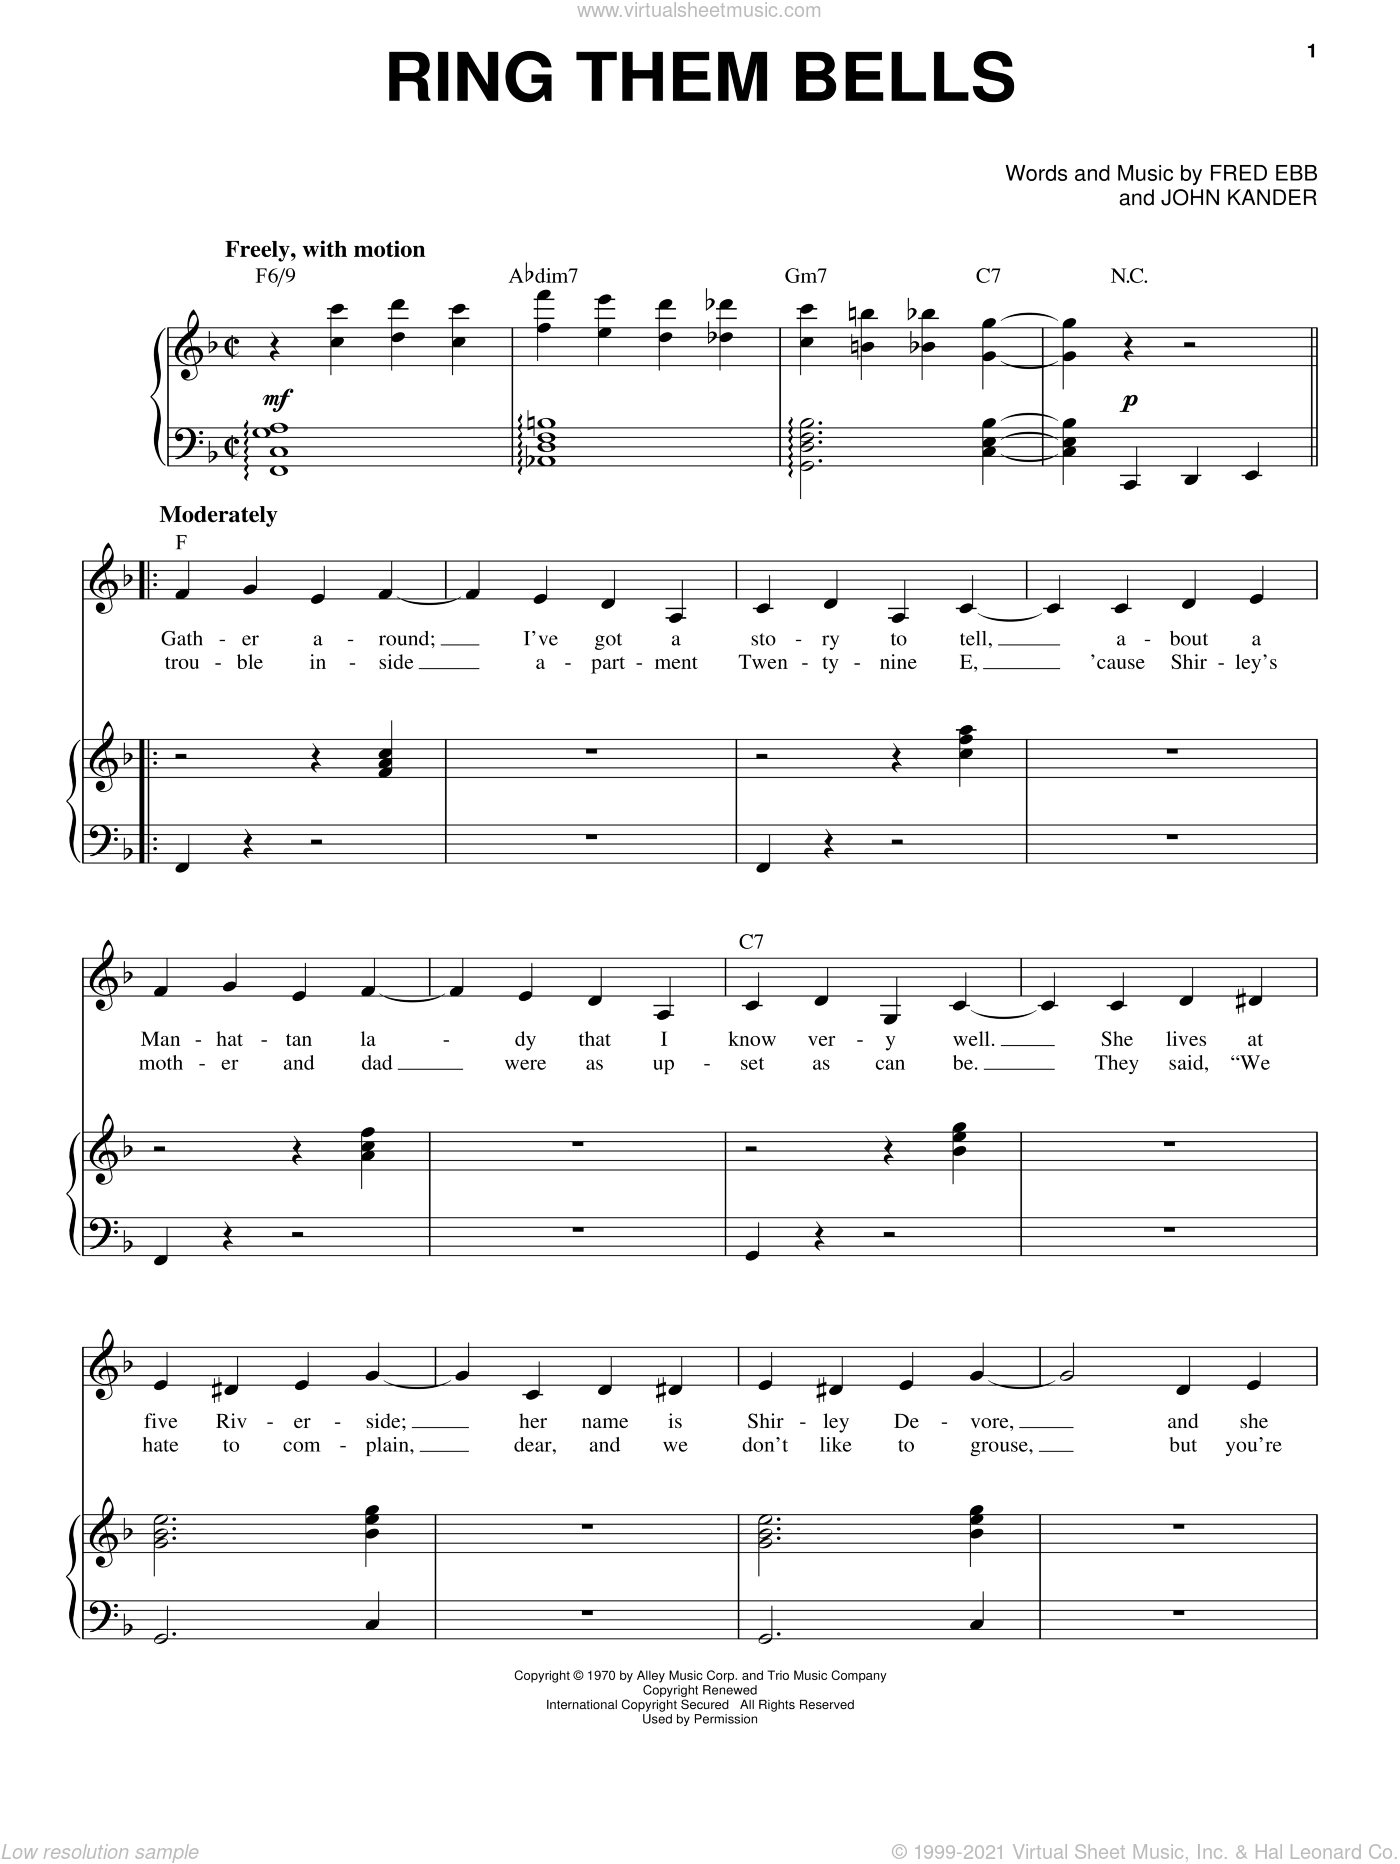 Ring Them Bells sheet music for voice and piano by John Kander, Kander & Ebb and Fred Ebb. Score Image Preview.